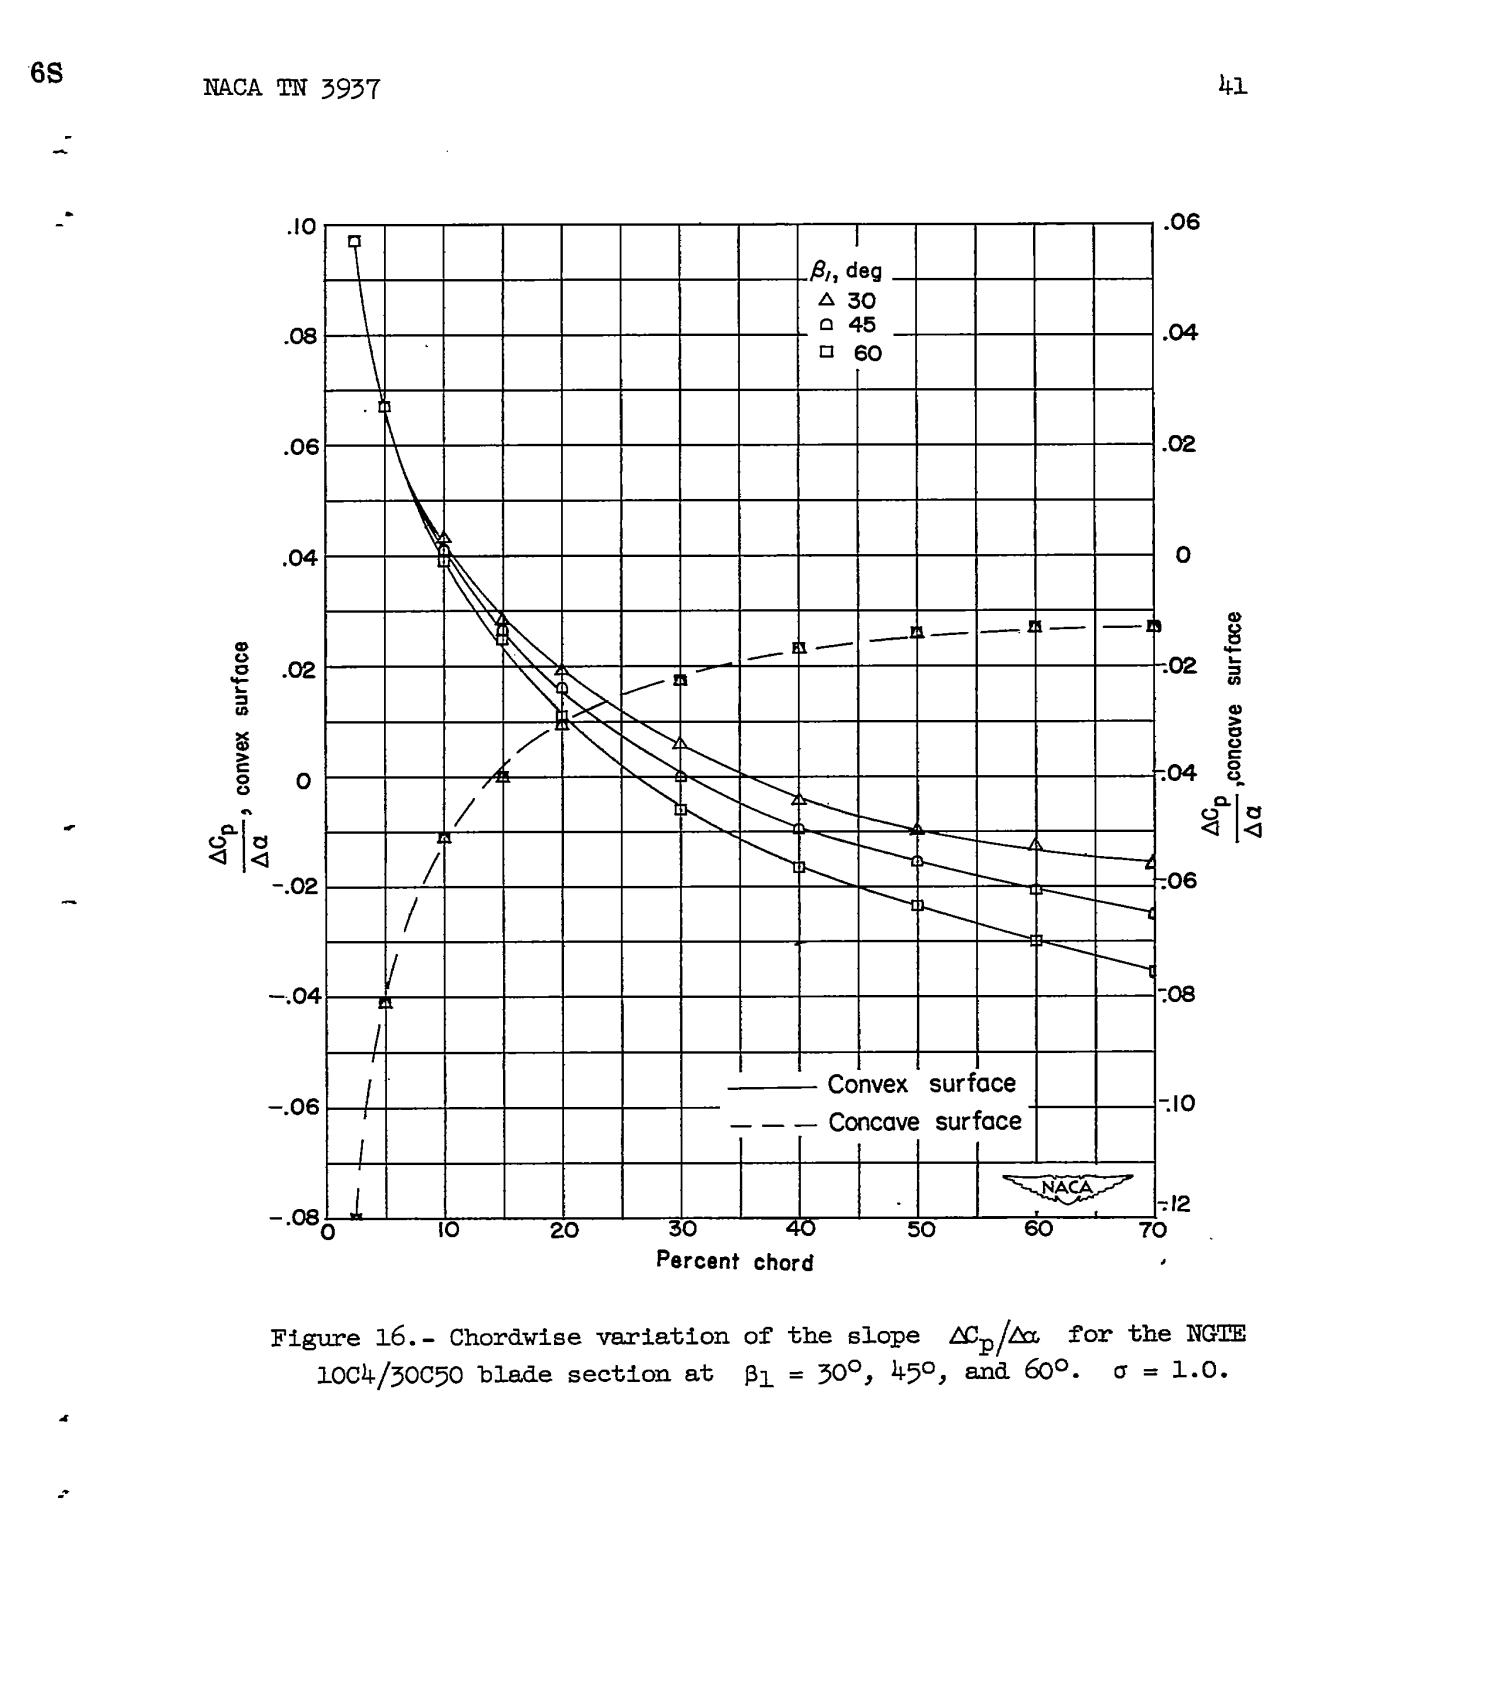 A Comparison Of Typical National Gas Turbine Establishment And Naca Jet Engine Diagram An Axialflow Axial Flow Compressor Blade Sections